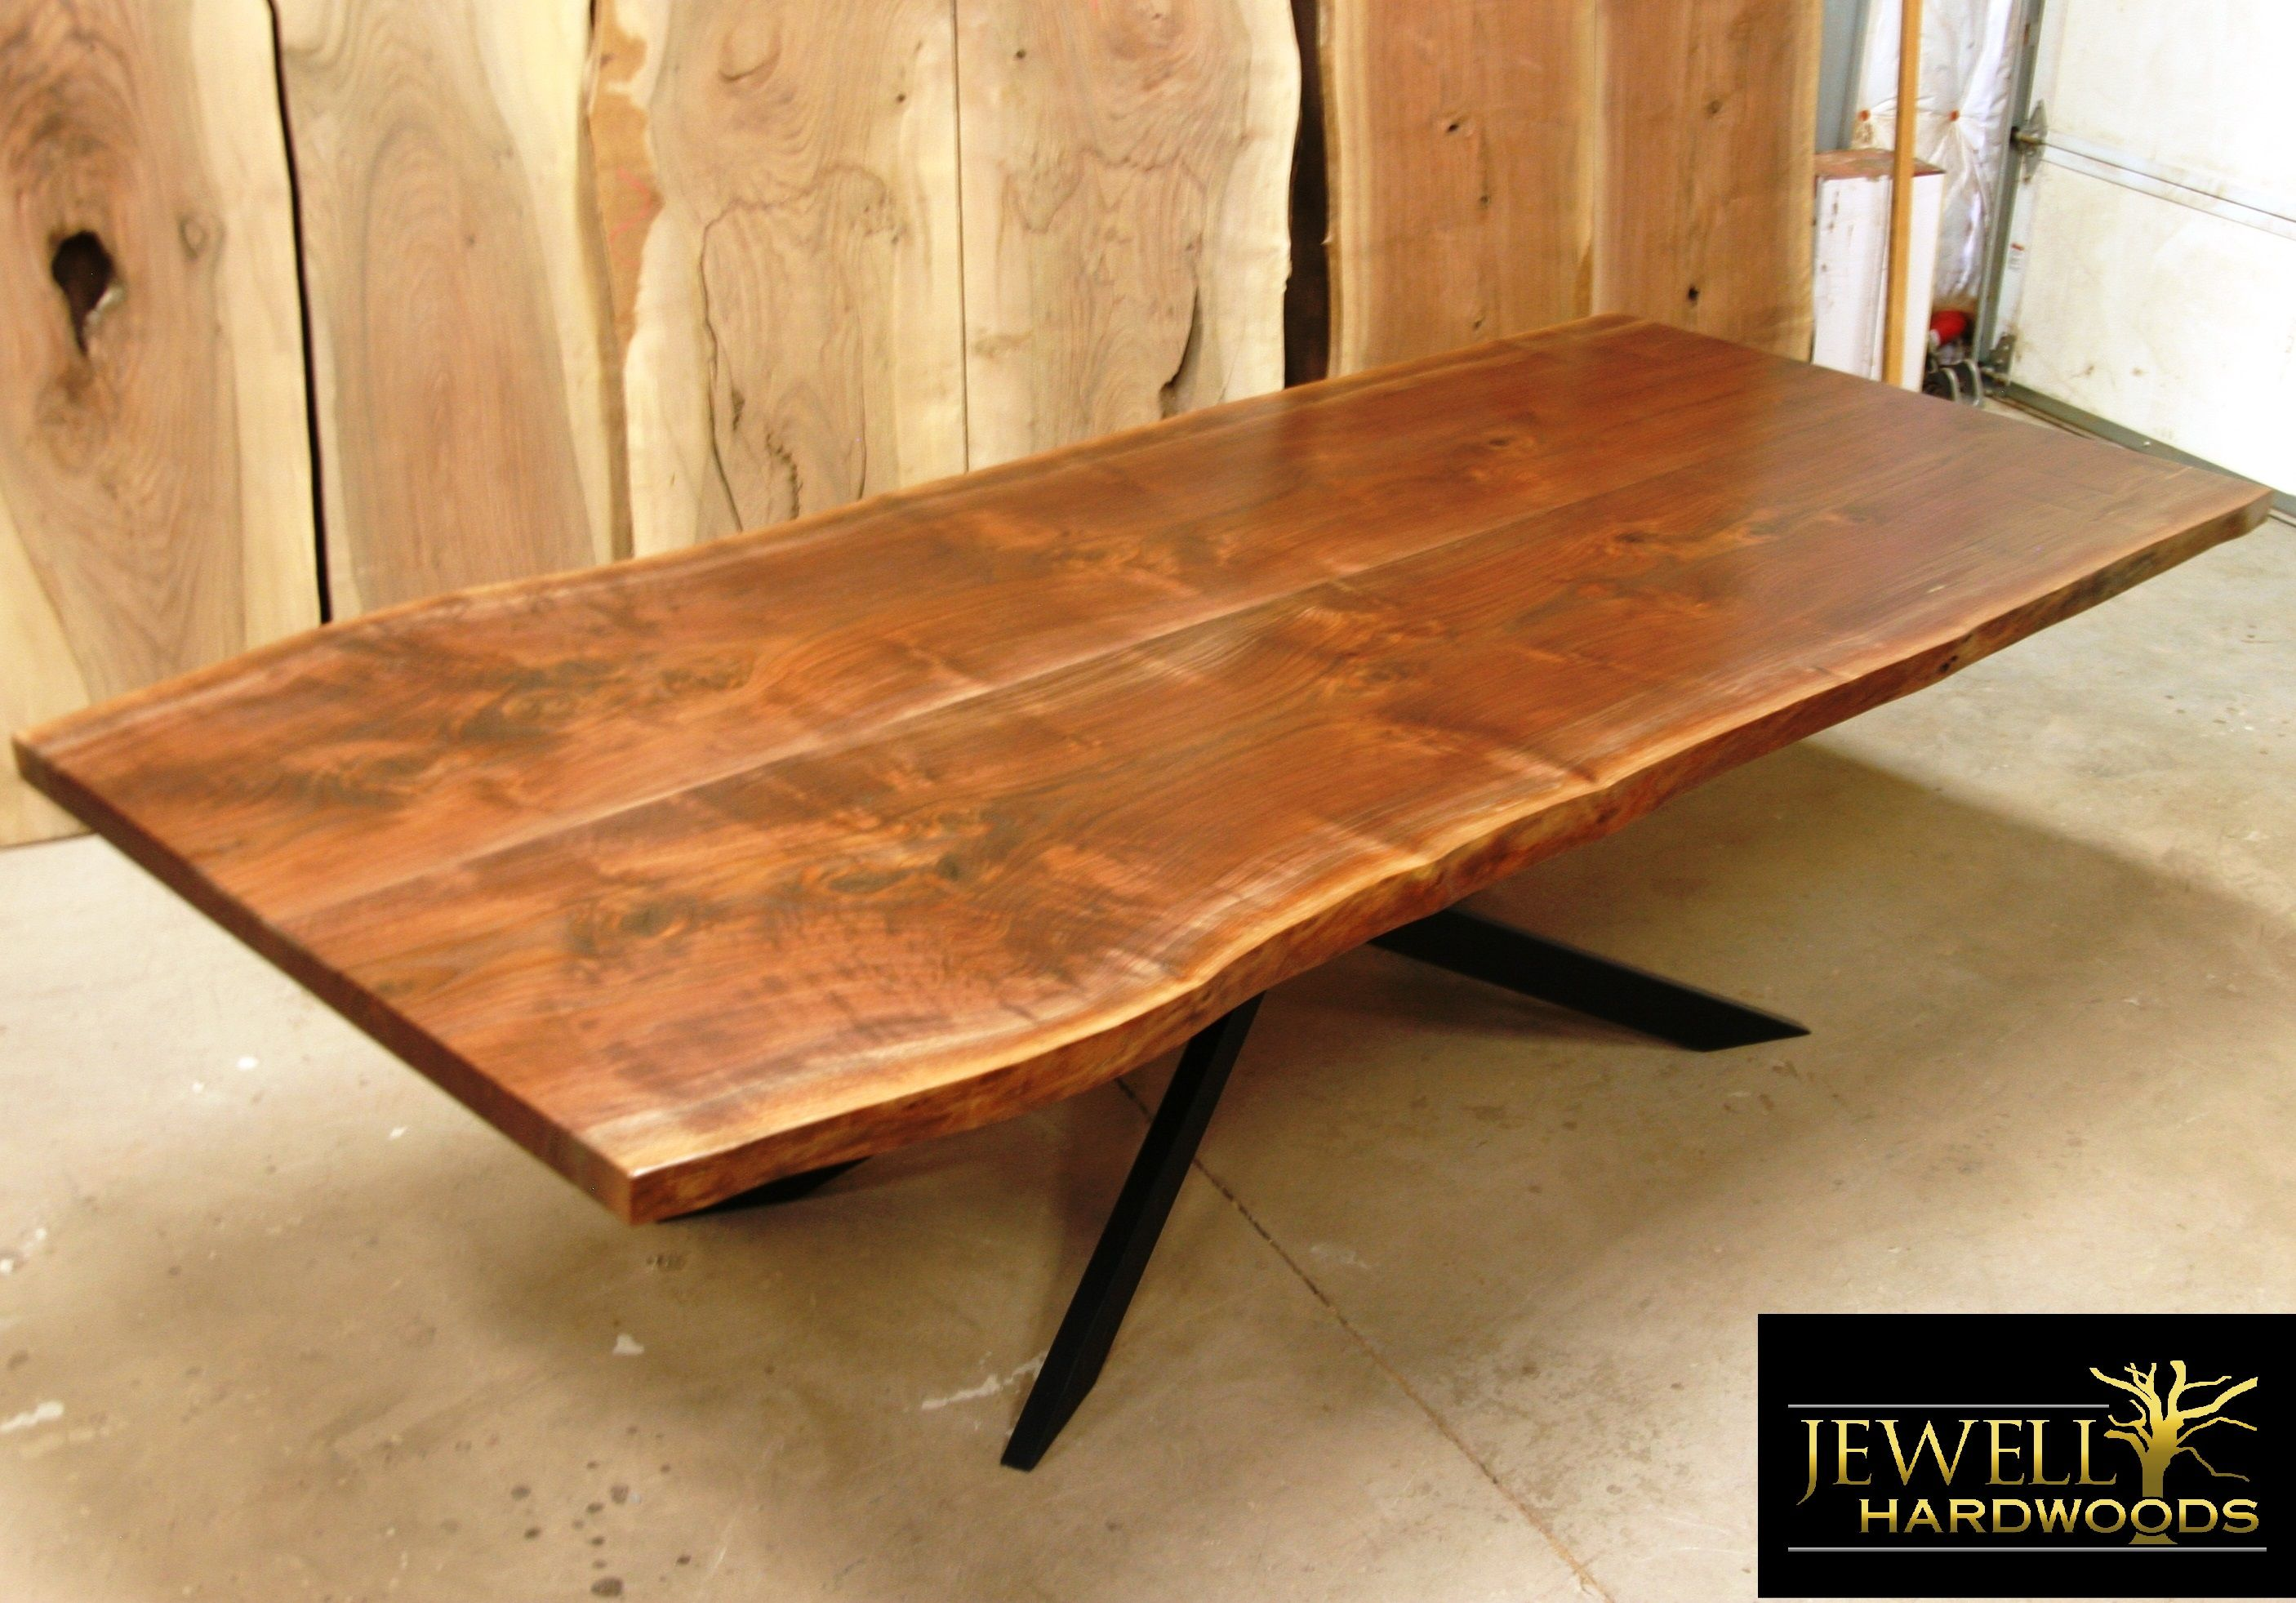 10 ft Black Walnut Book-Matched Dining Table with Xavier Base usman ...